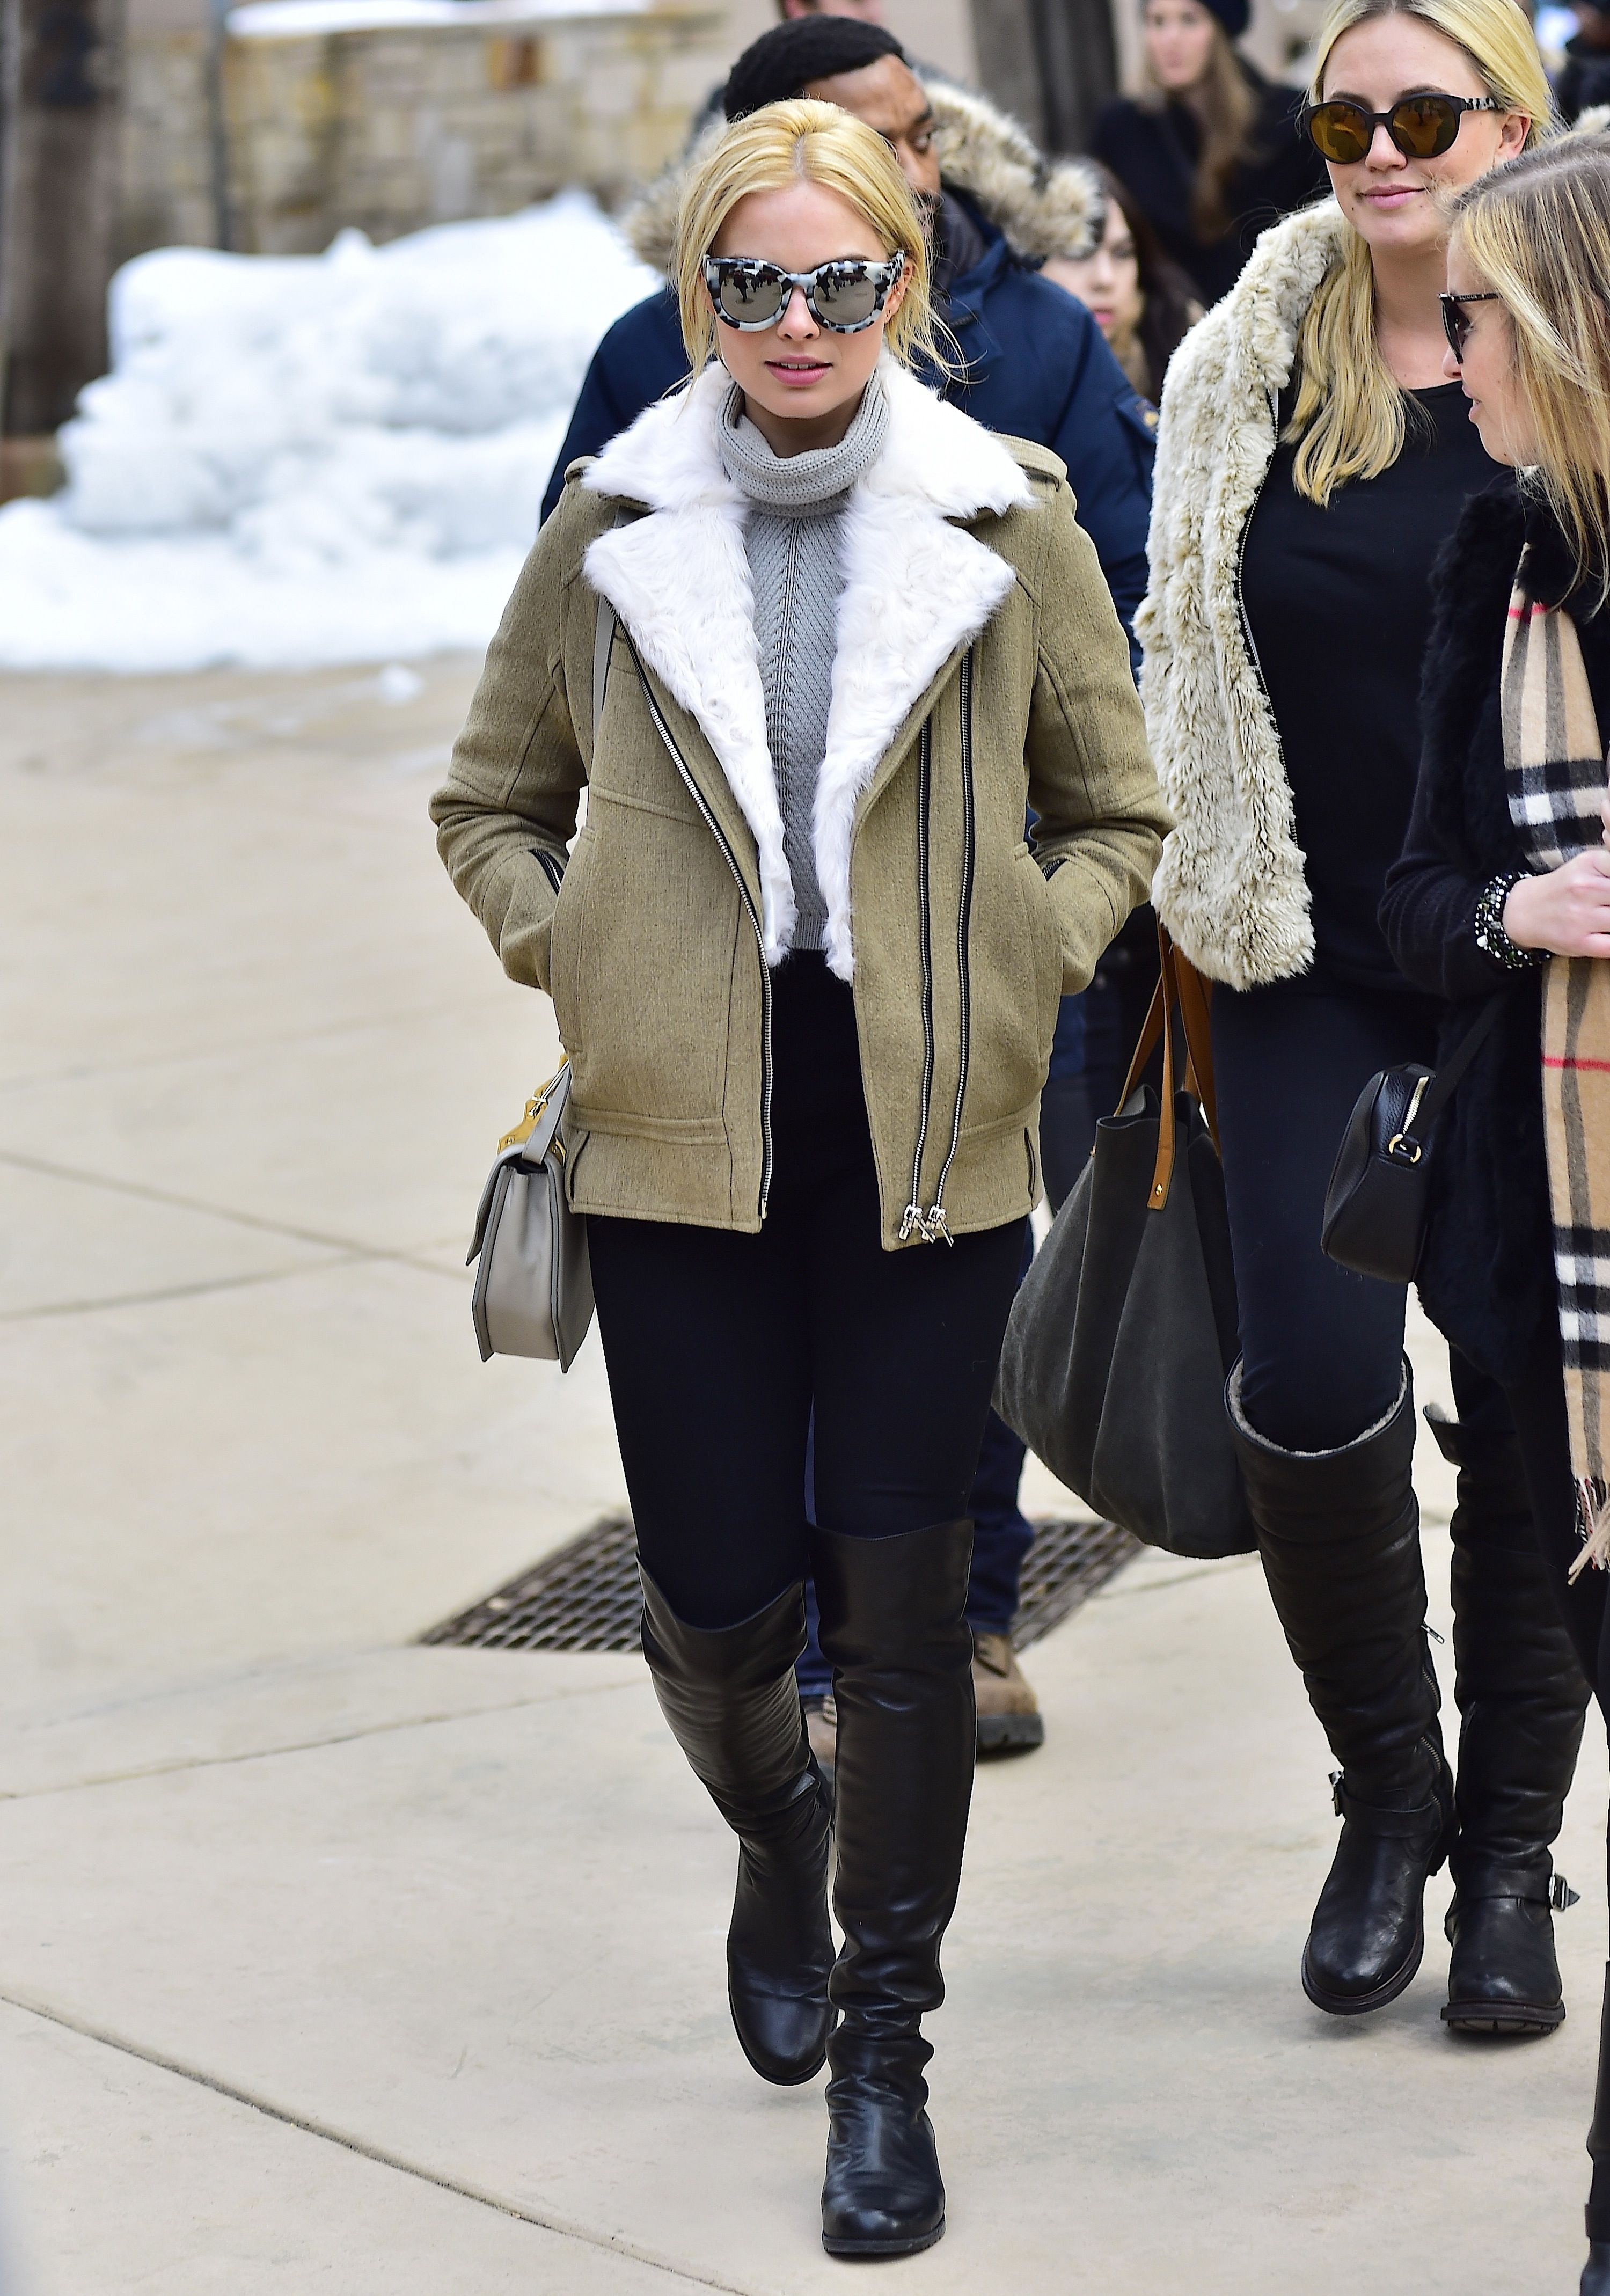 Celebrities at Sundance Show Off Their Chic Winter Style: Rooney Mara, Nicole Kidman,More recommendations